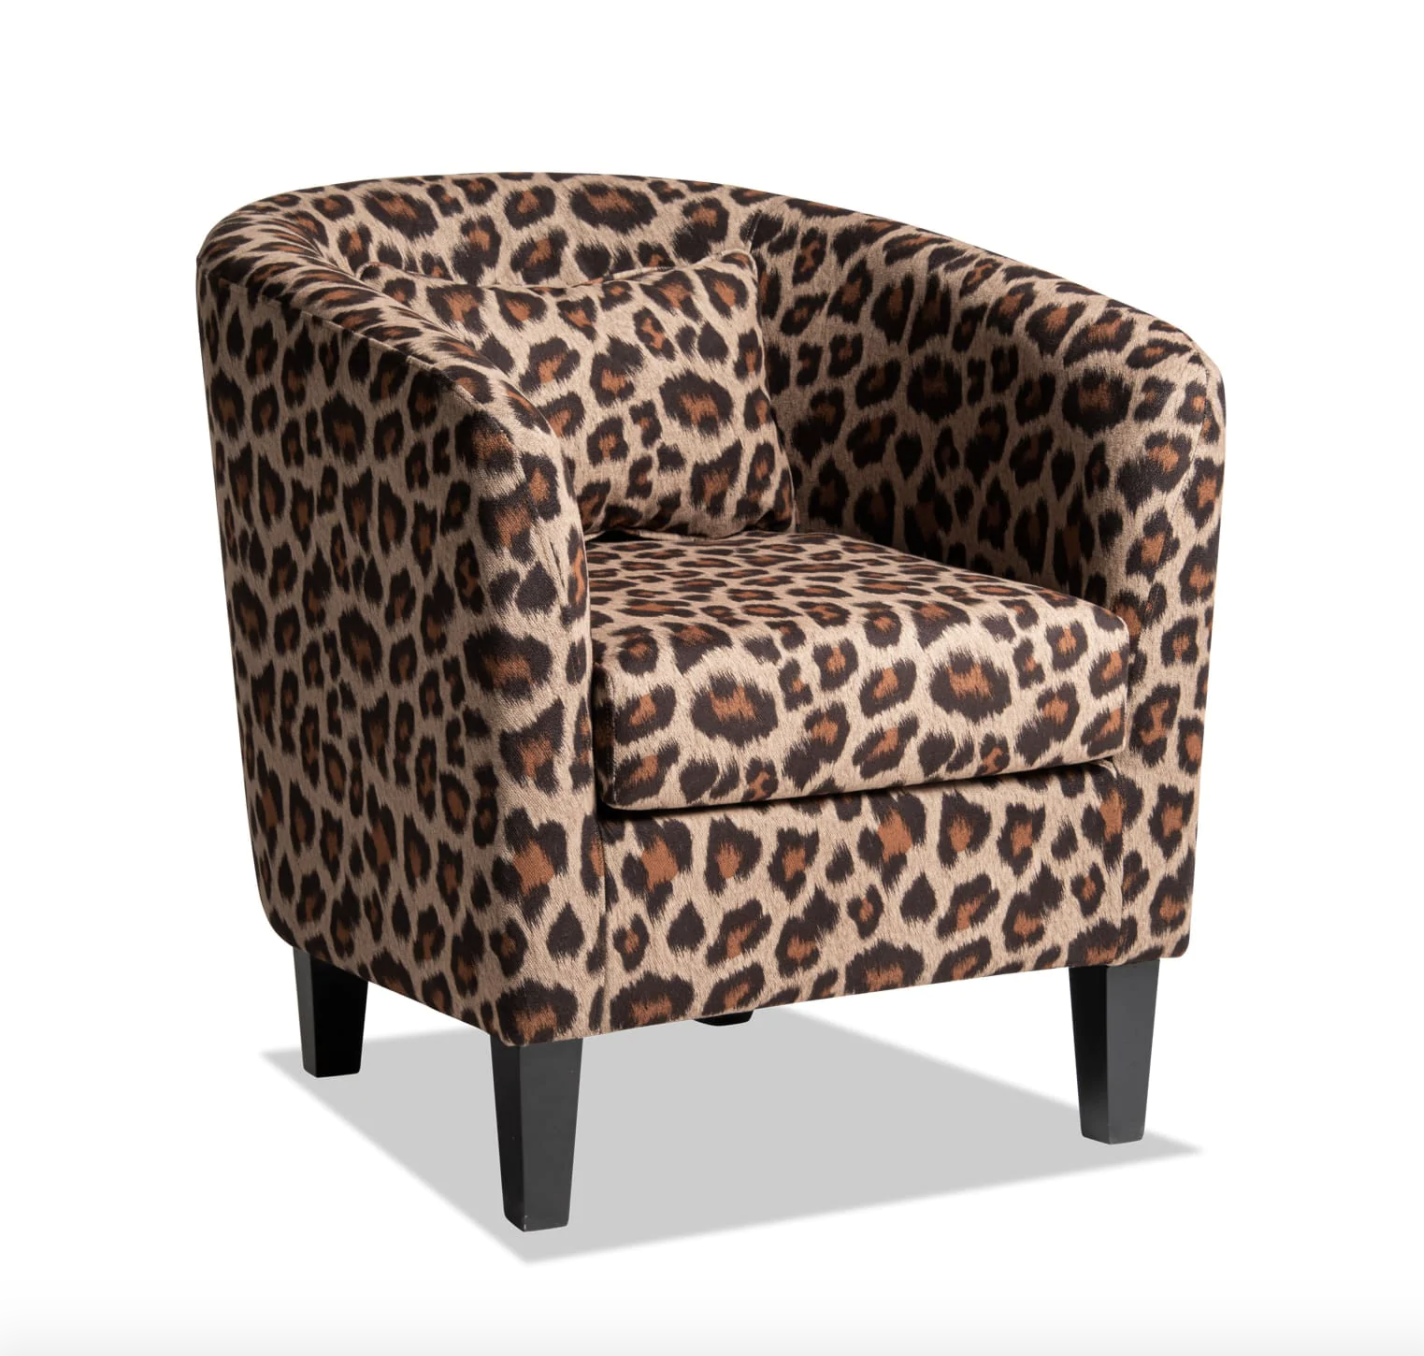 the Simba Brown Accent Chair